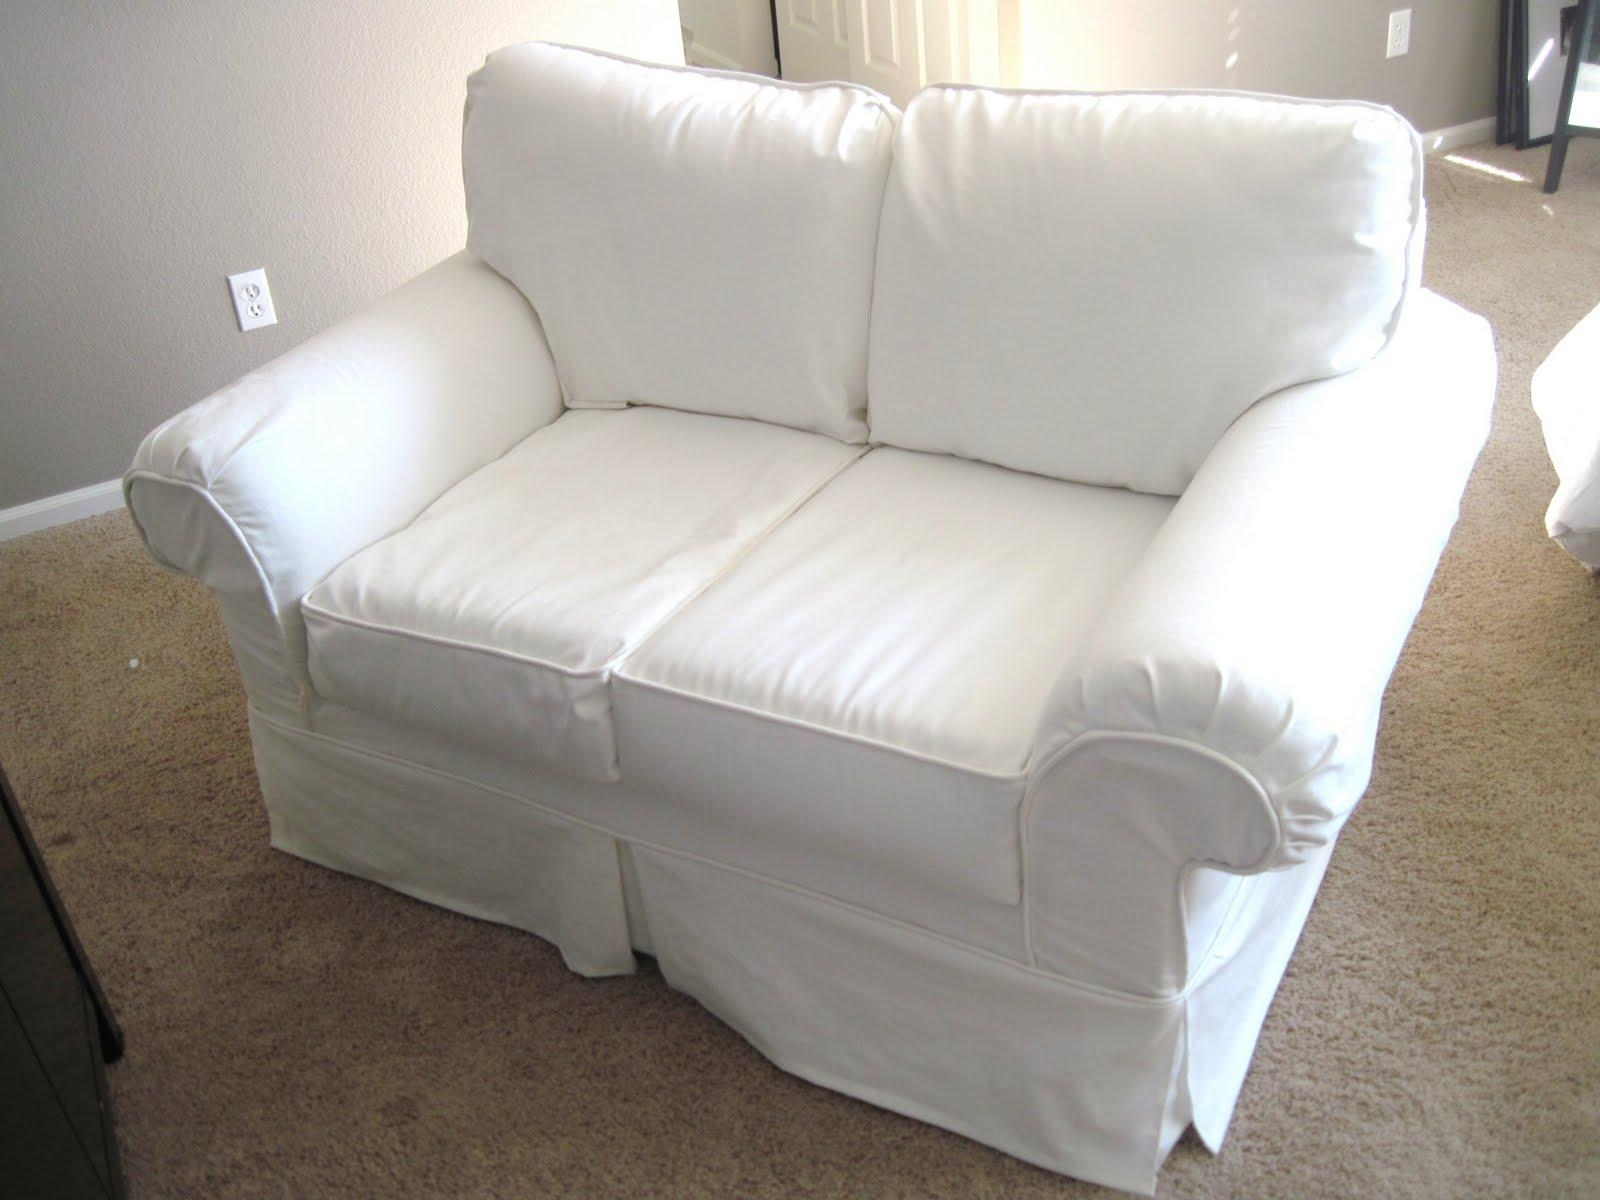 Furniture: Couch Covers At Walmart To Make Your Furniture Stylish With Regard To Slipcovers For Sofas And Chairs (Image 12 of 20)